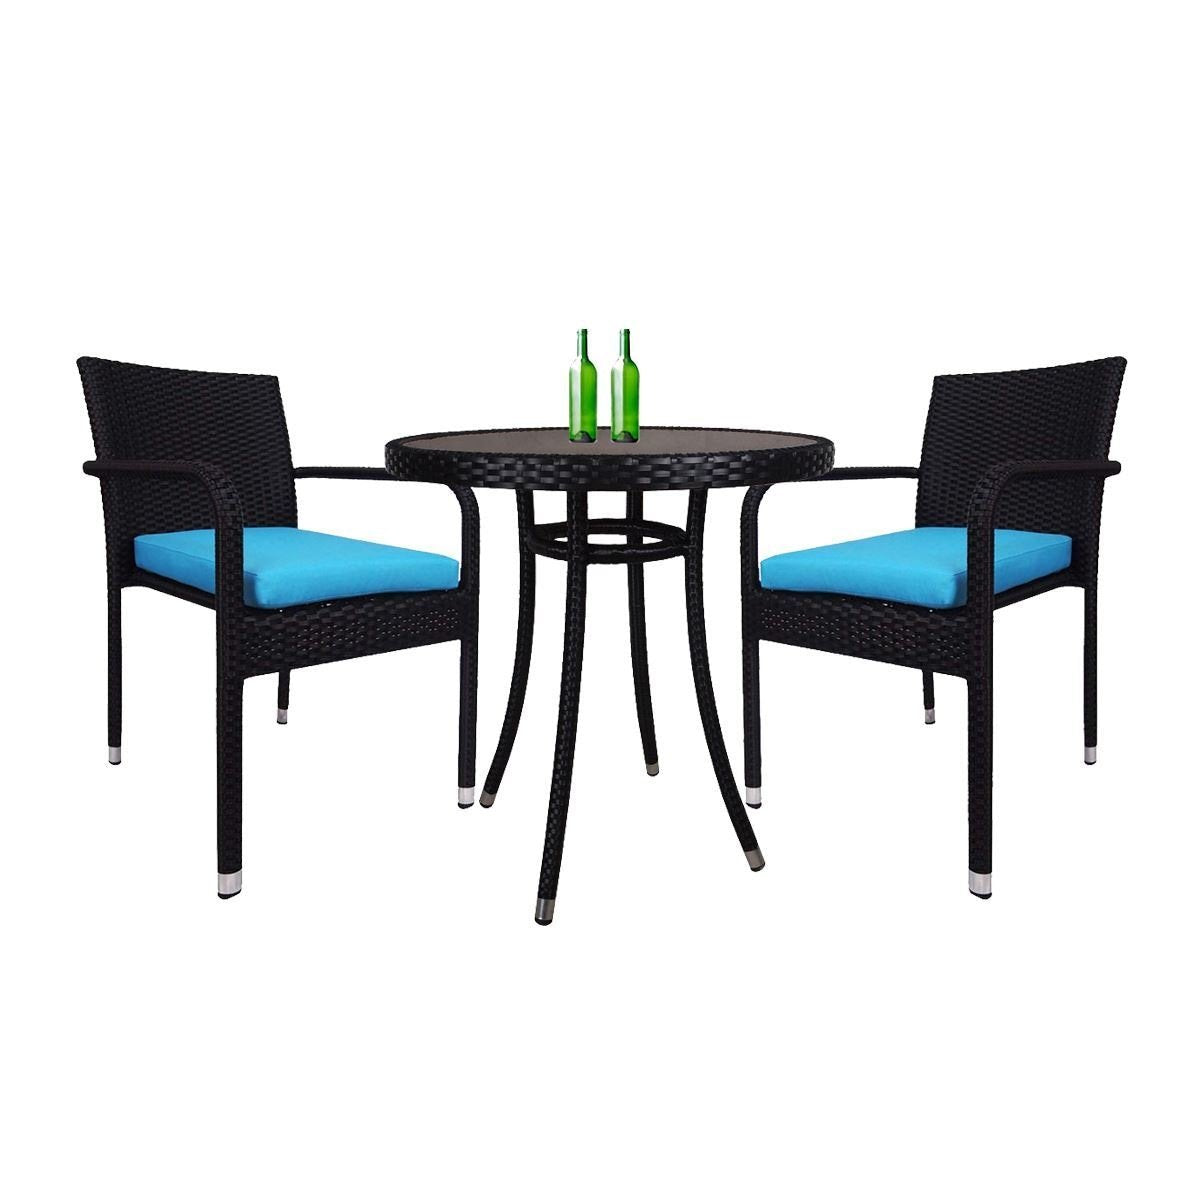 Balcony 2 Chair Bistro Set, Blue Cushion